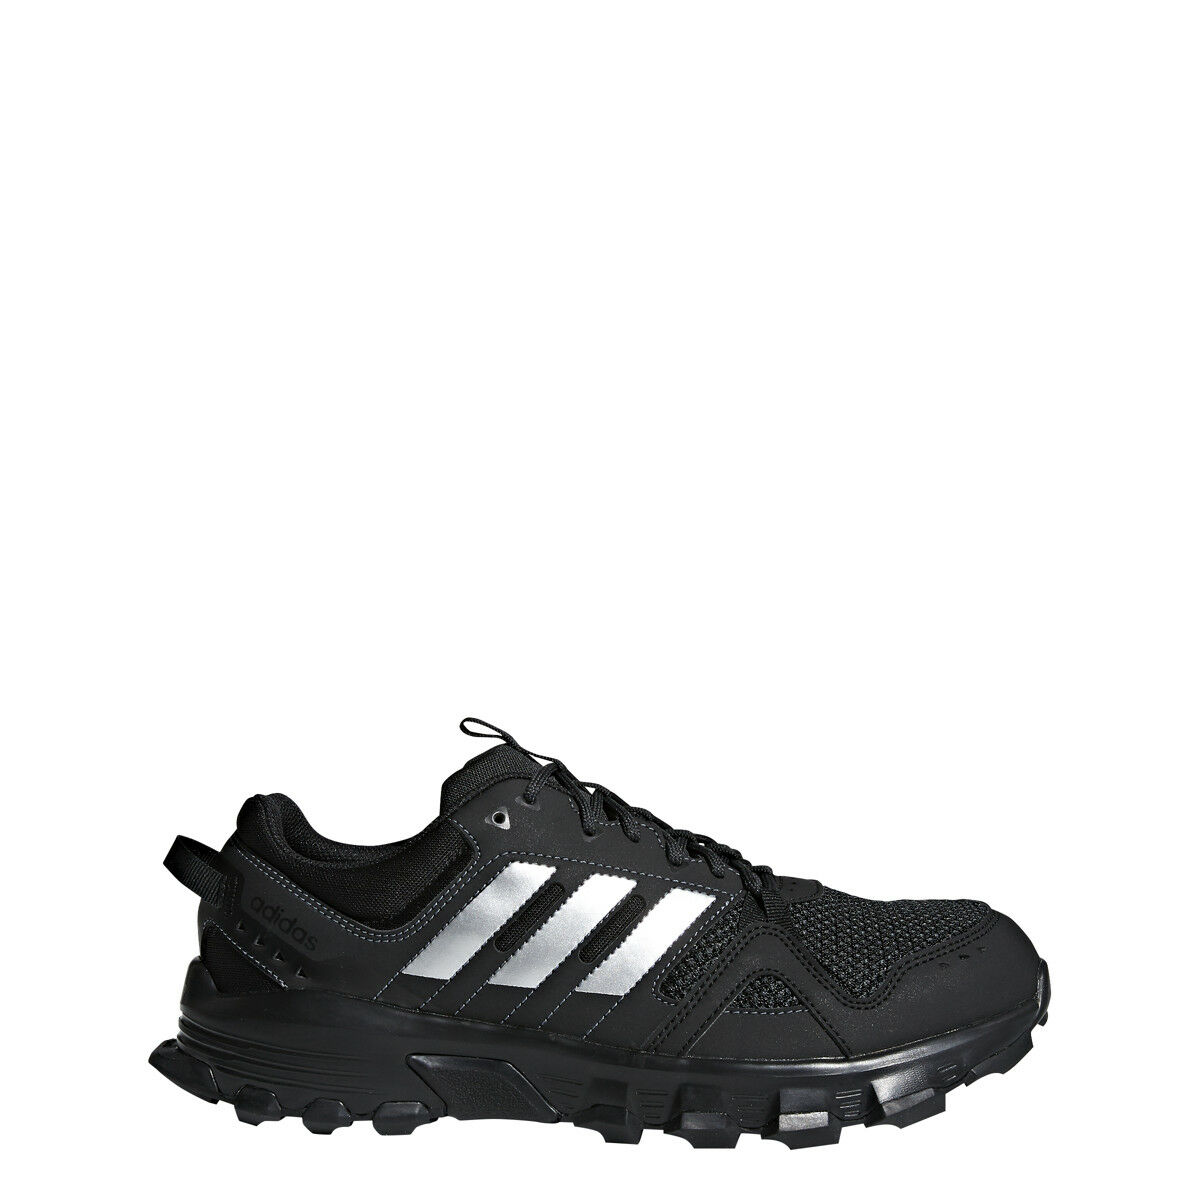 sMens Adidas Rockadia Trail Black Sport Athletic Running Sho